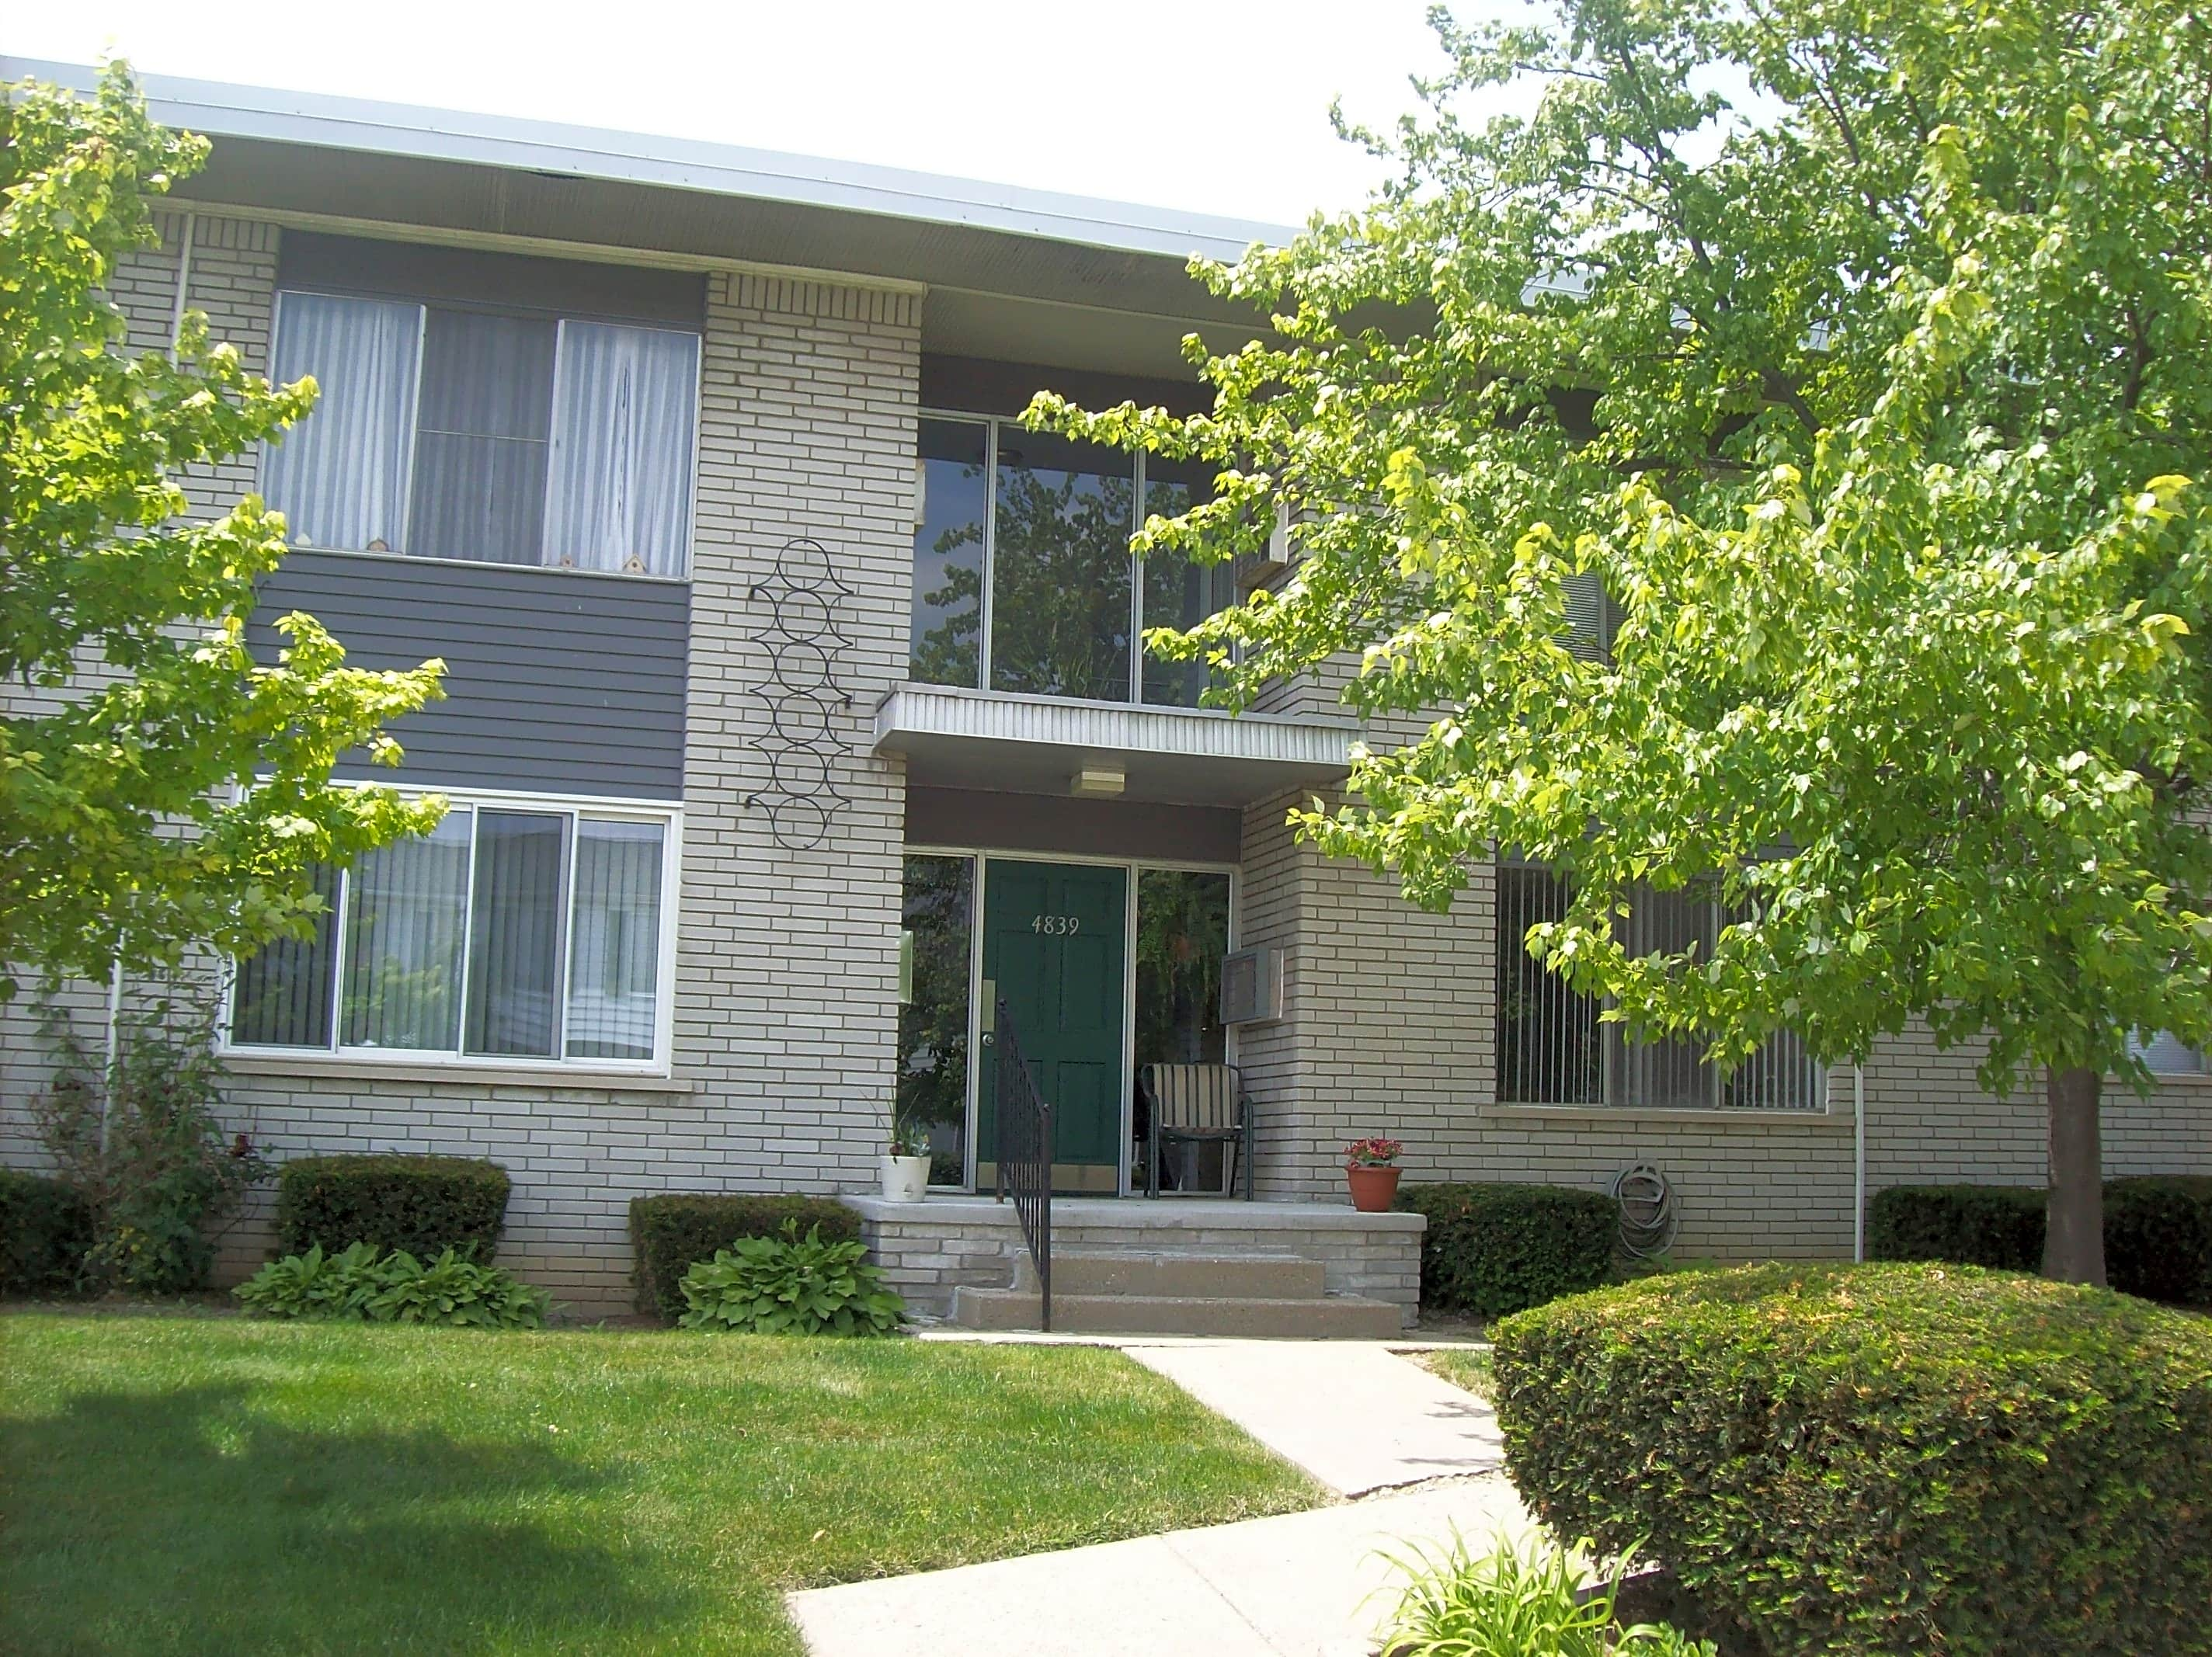 Condo for Rent in Royal Oak